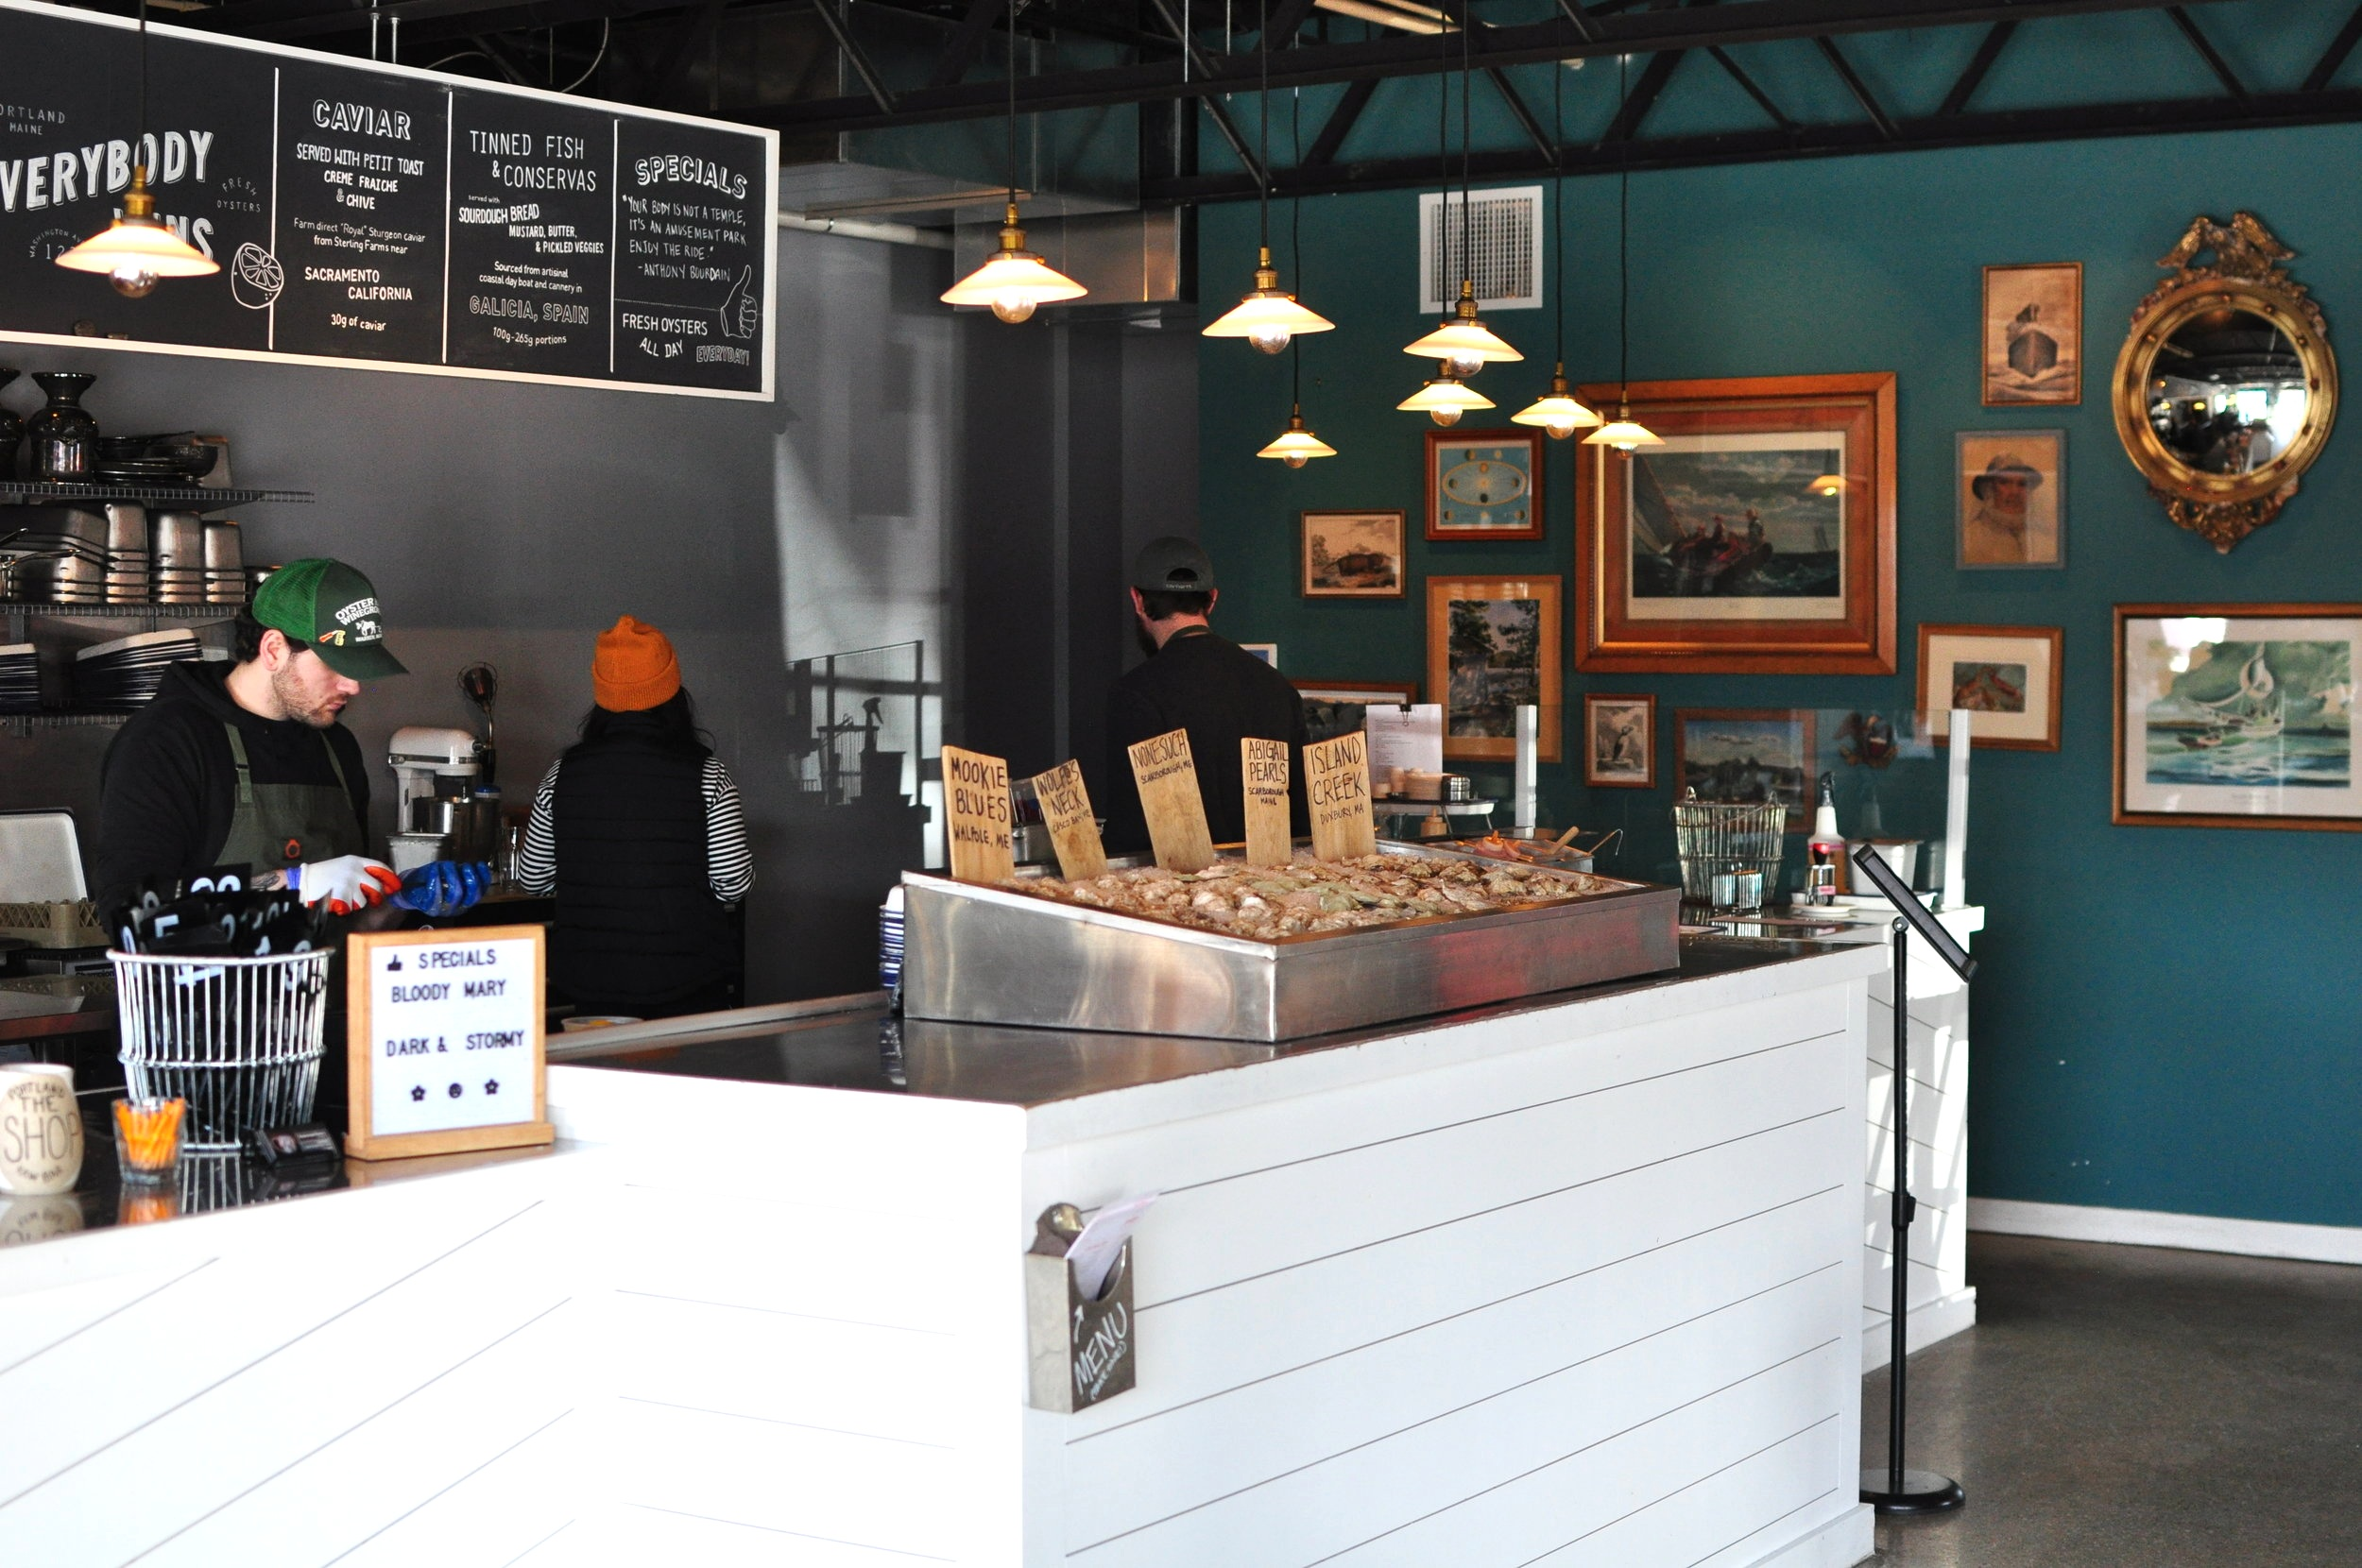 The Shop offers a selection of quality Maine oysters, beers, wines and bubbles, as well as caviar and tinned seafood.